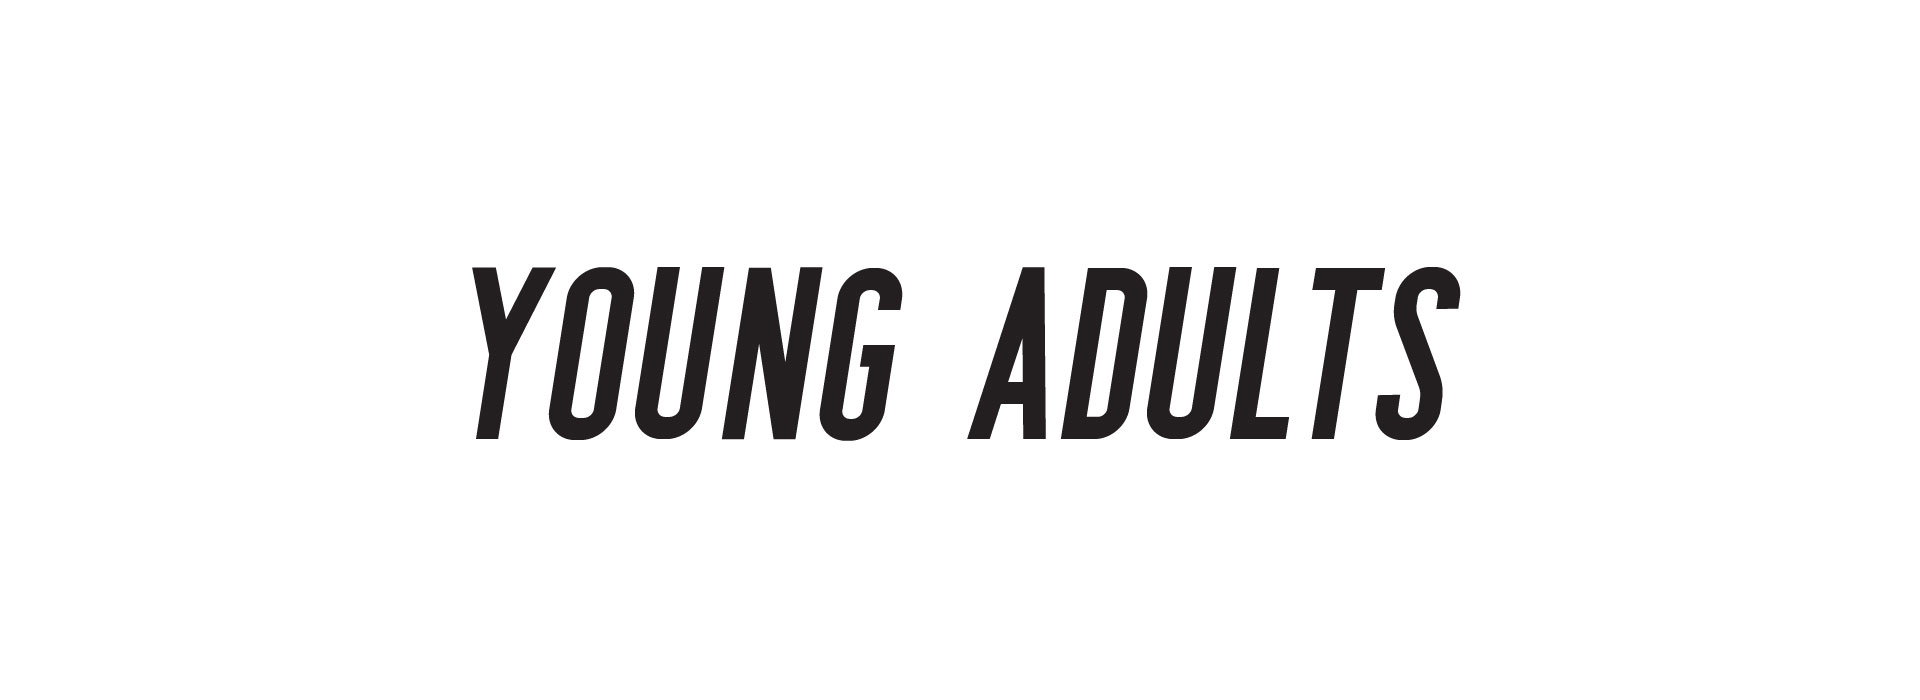 young adults-01